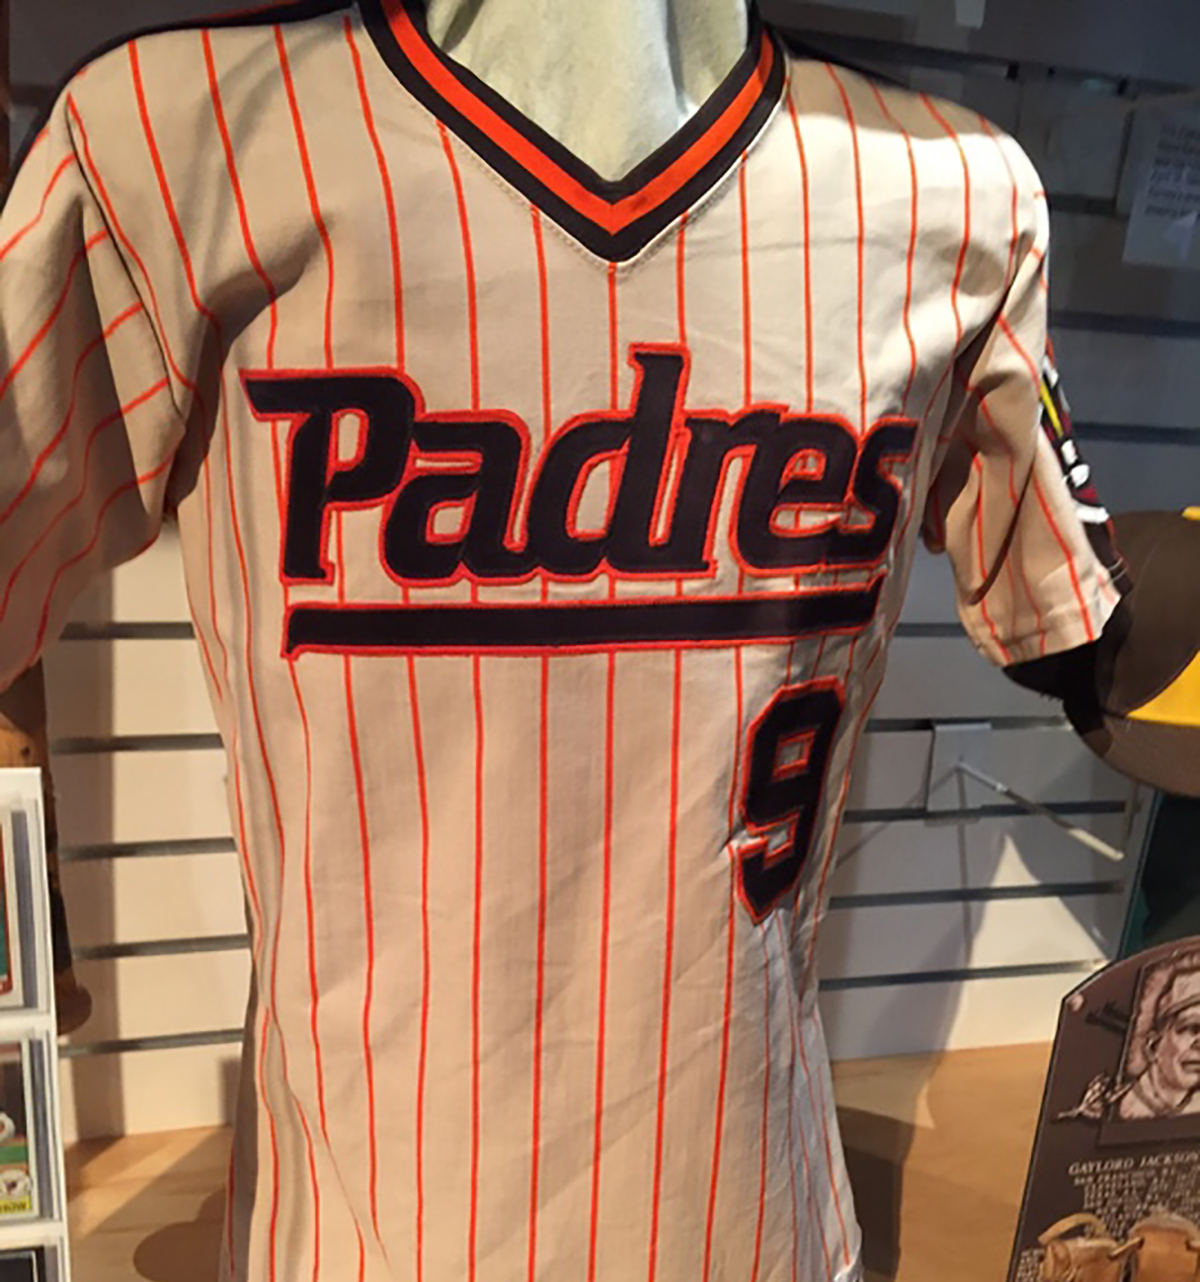 69bc638c8 ... the recently unveiled 1985 Padres prototype jersey